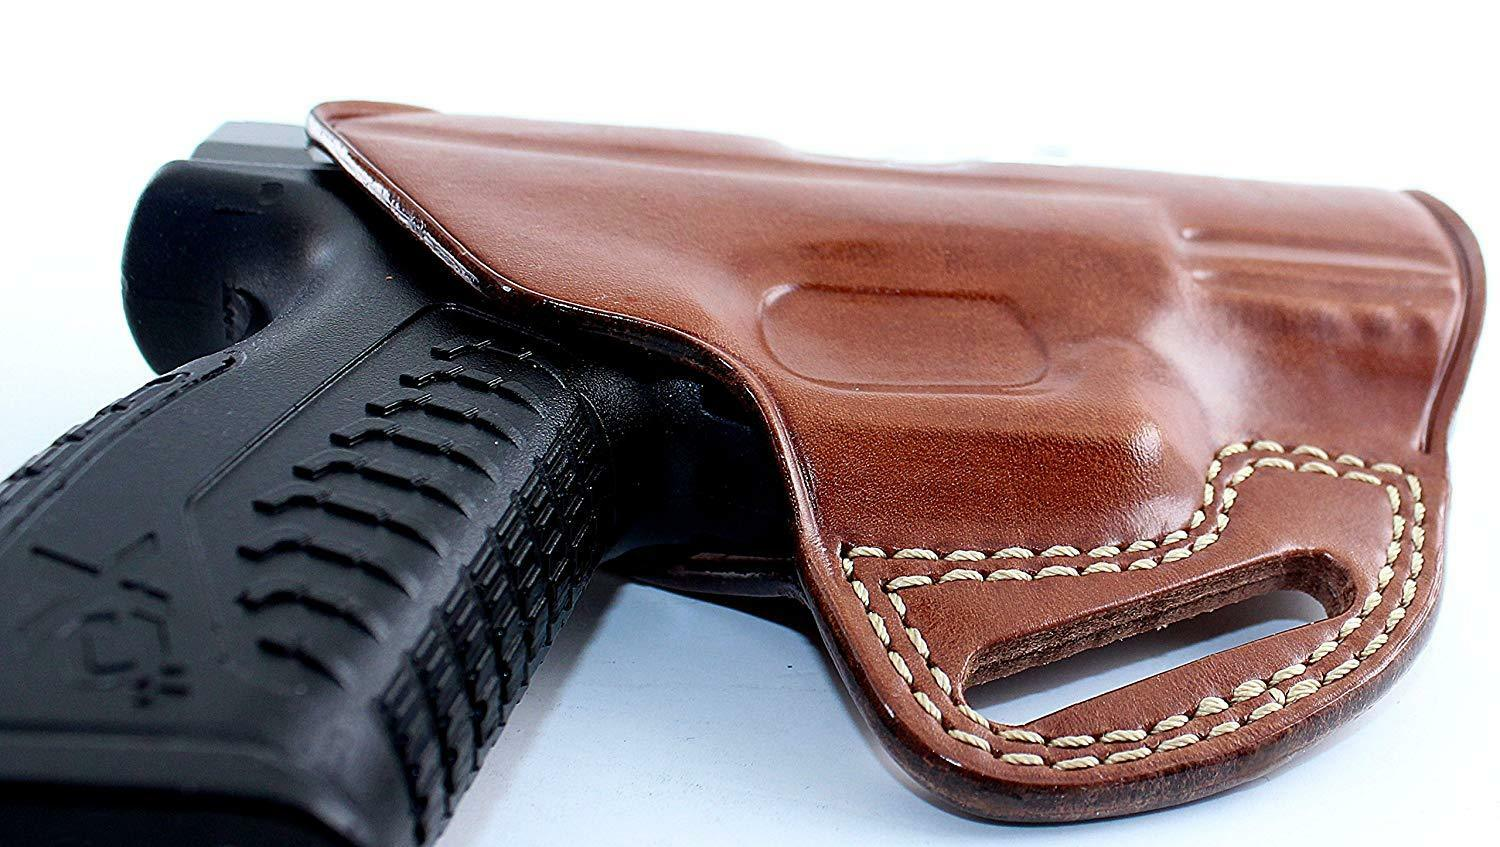 Leder Pancake Holster Walther Fits Walther Holster PPQ M2 - 4.2